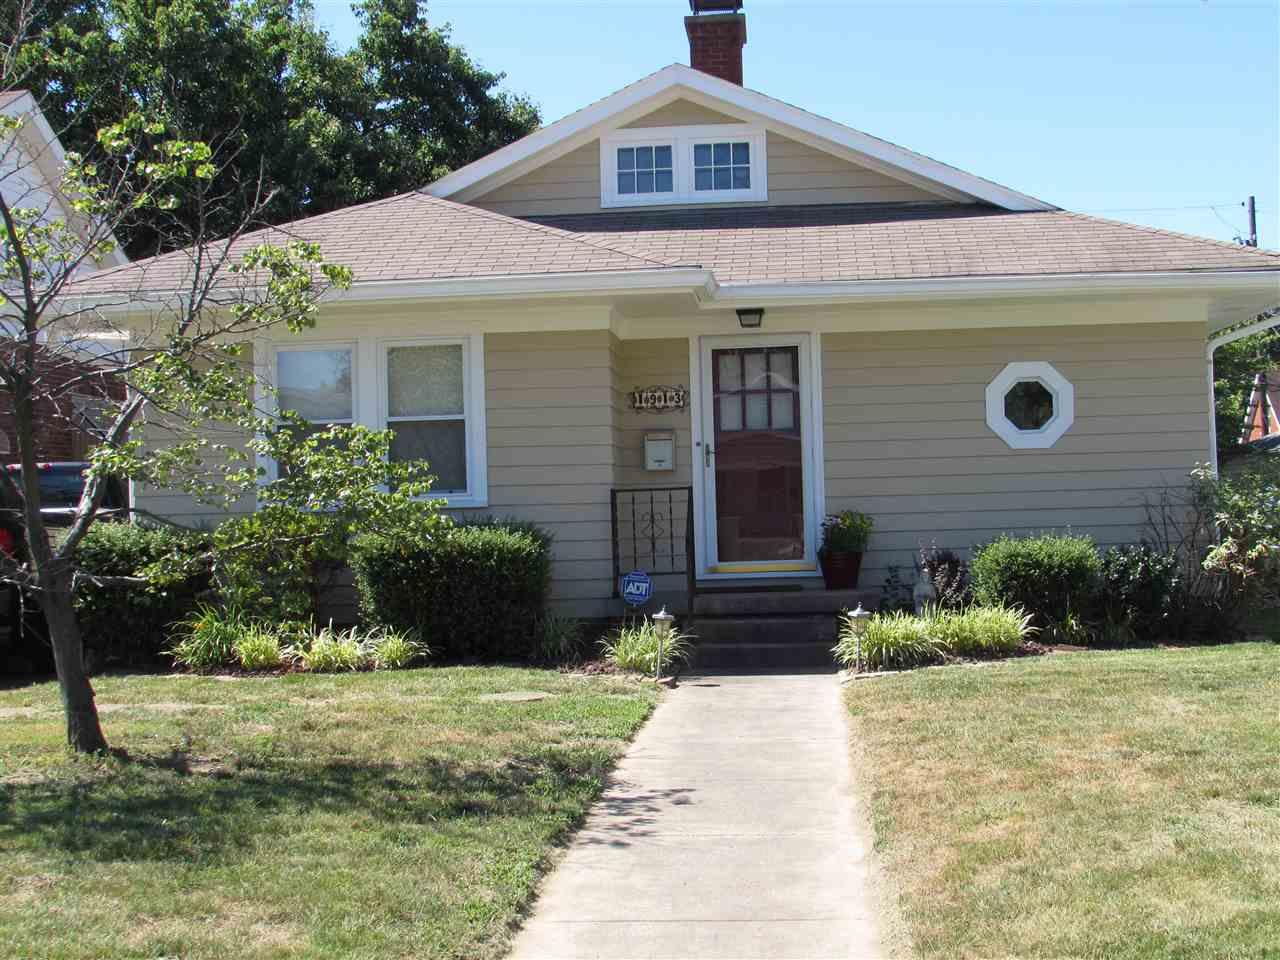 1913 E Mulberry, Evansville, IN 47714